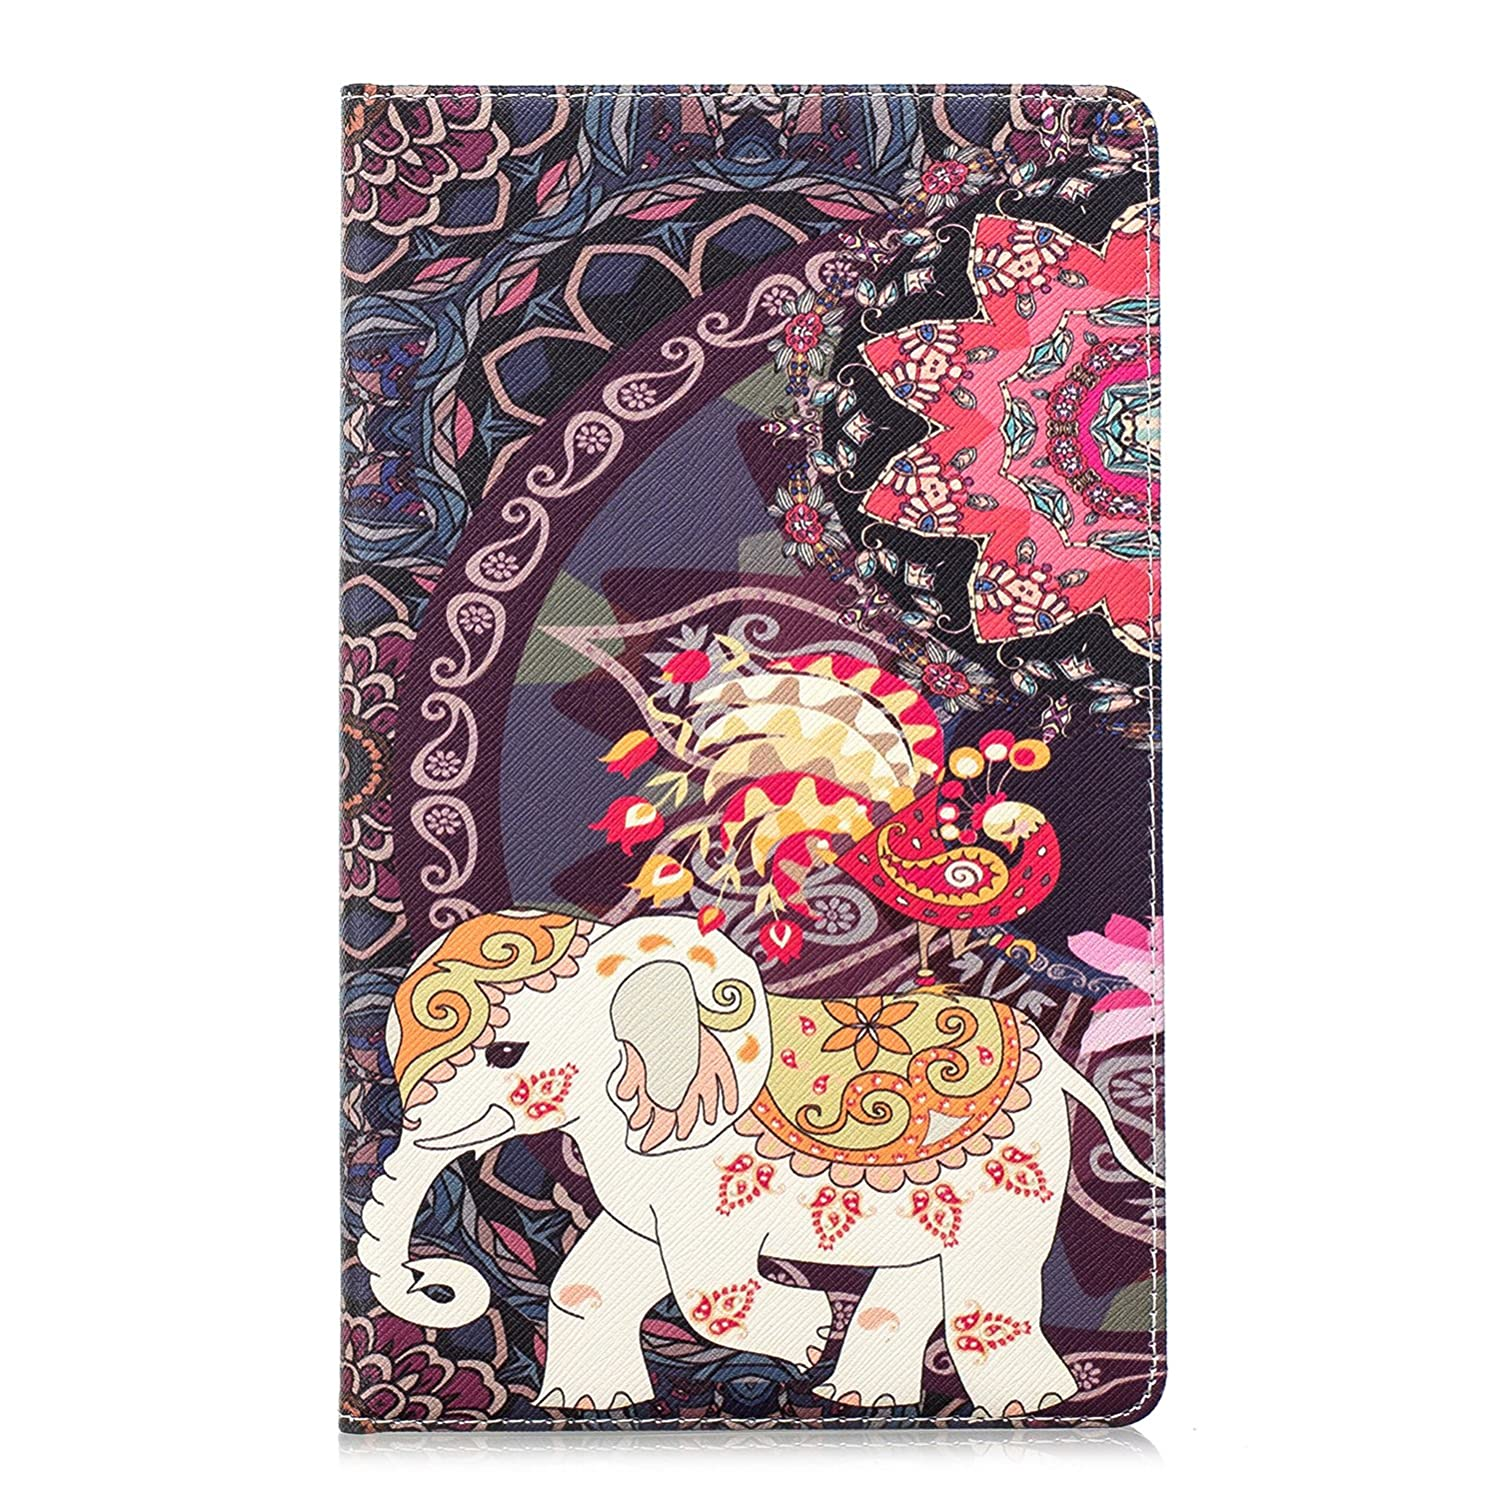 Leather Case for  Fire HD 8 Tablet Tablet, Slynmax Flip Folio Leather Wallet Case Flower Elephant Design Flodable Stand Protective Case for  Fire HD 8 Tablet